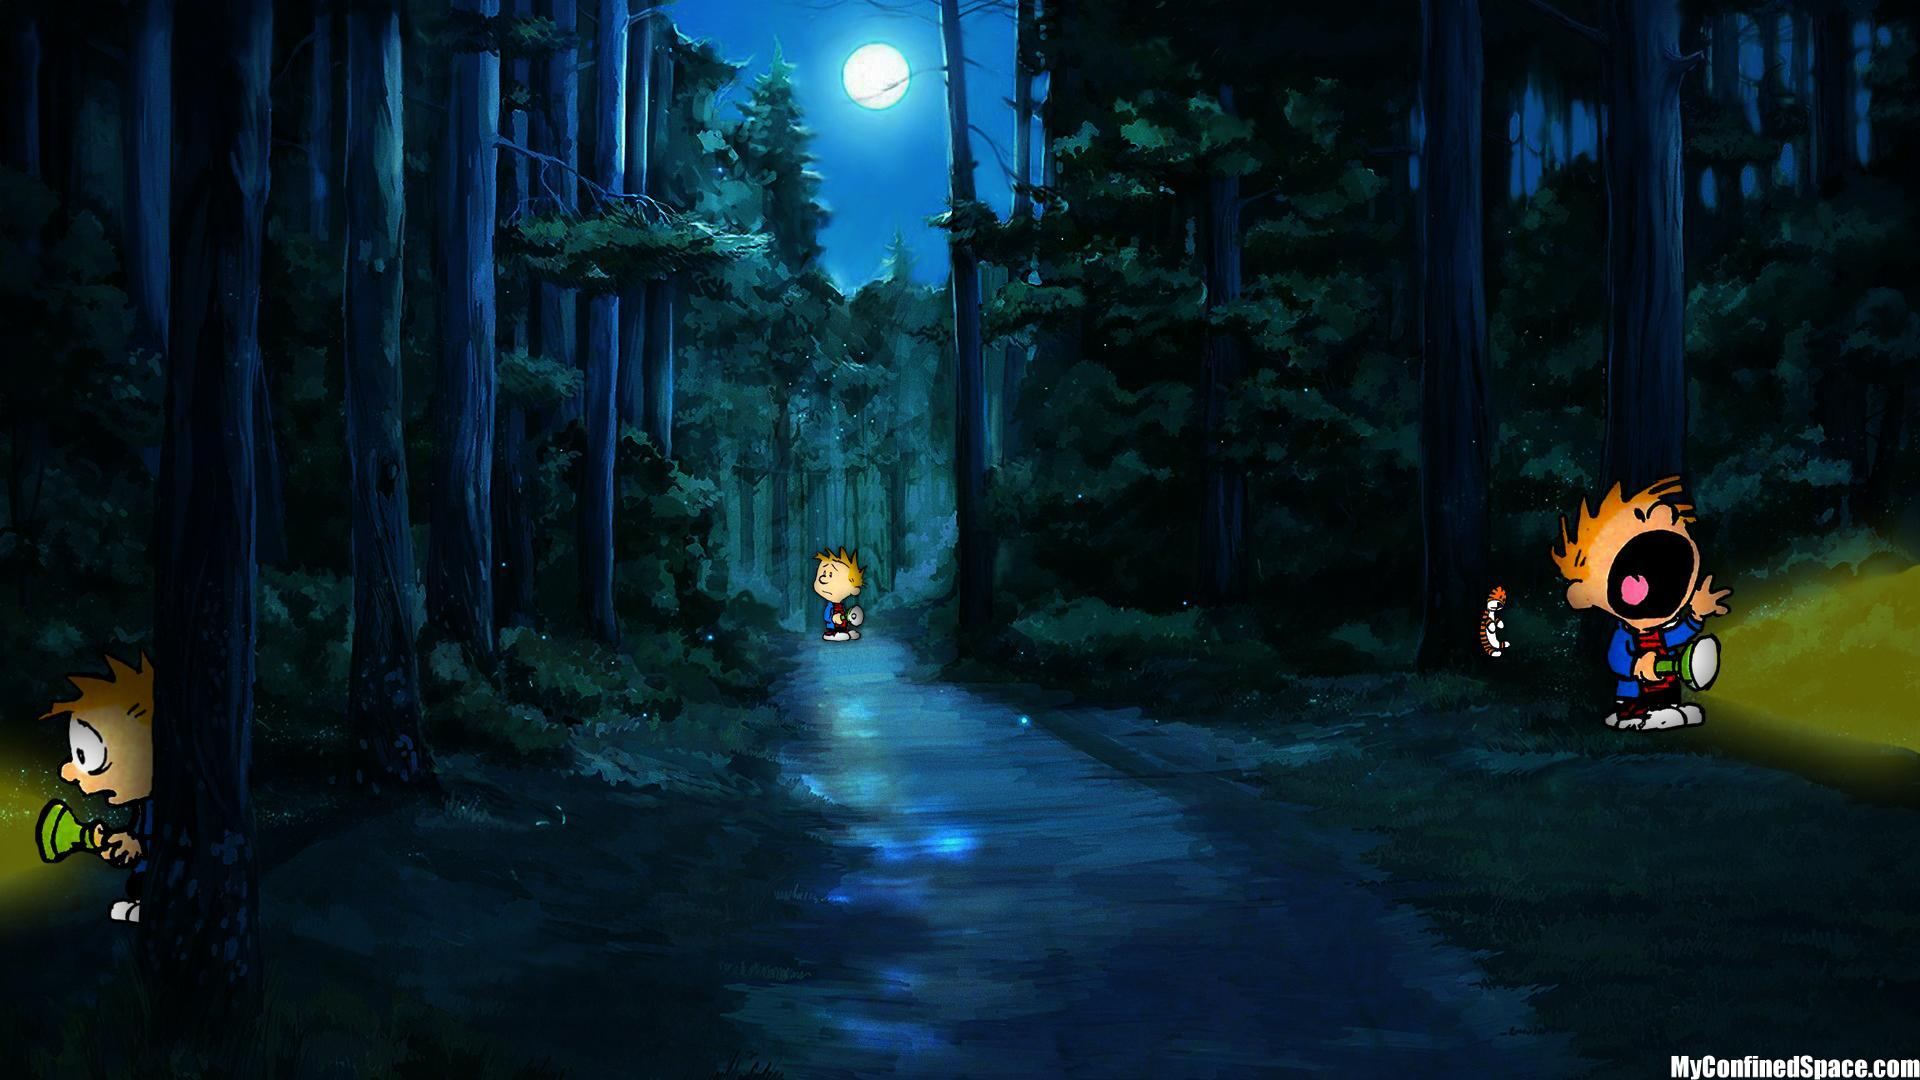 Free Download Calvin And Hobbes Comics Forest Trees Mood G